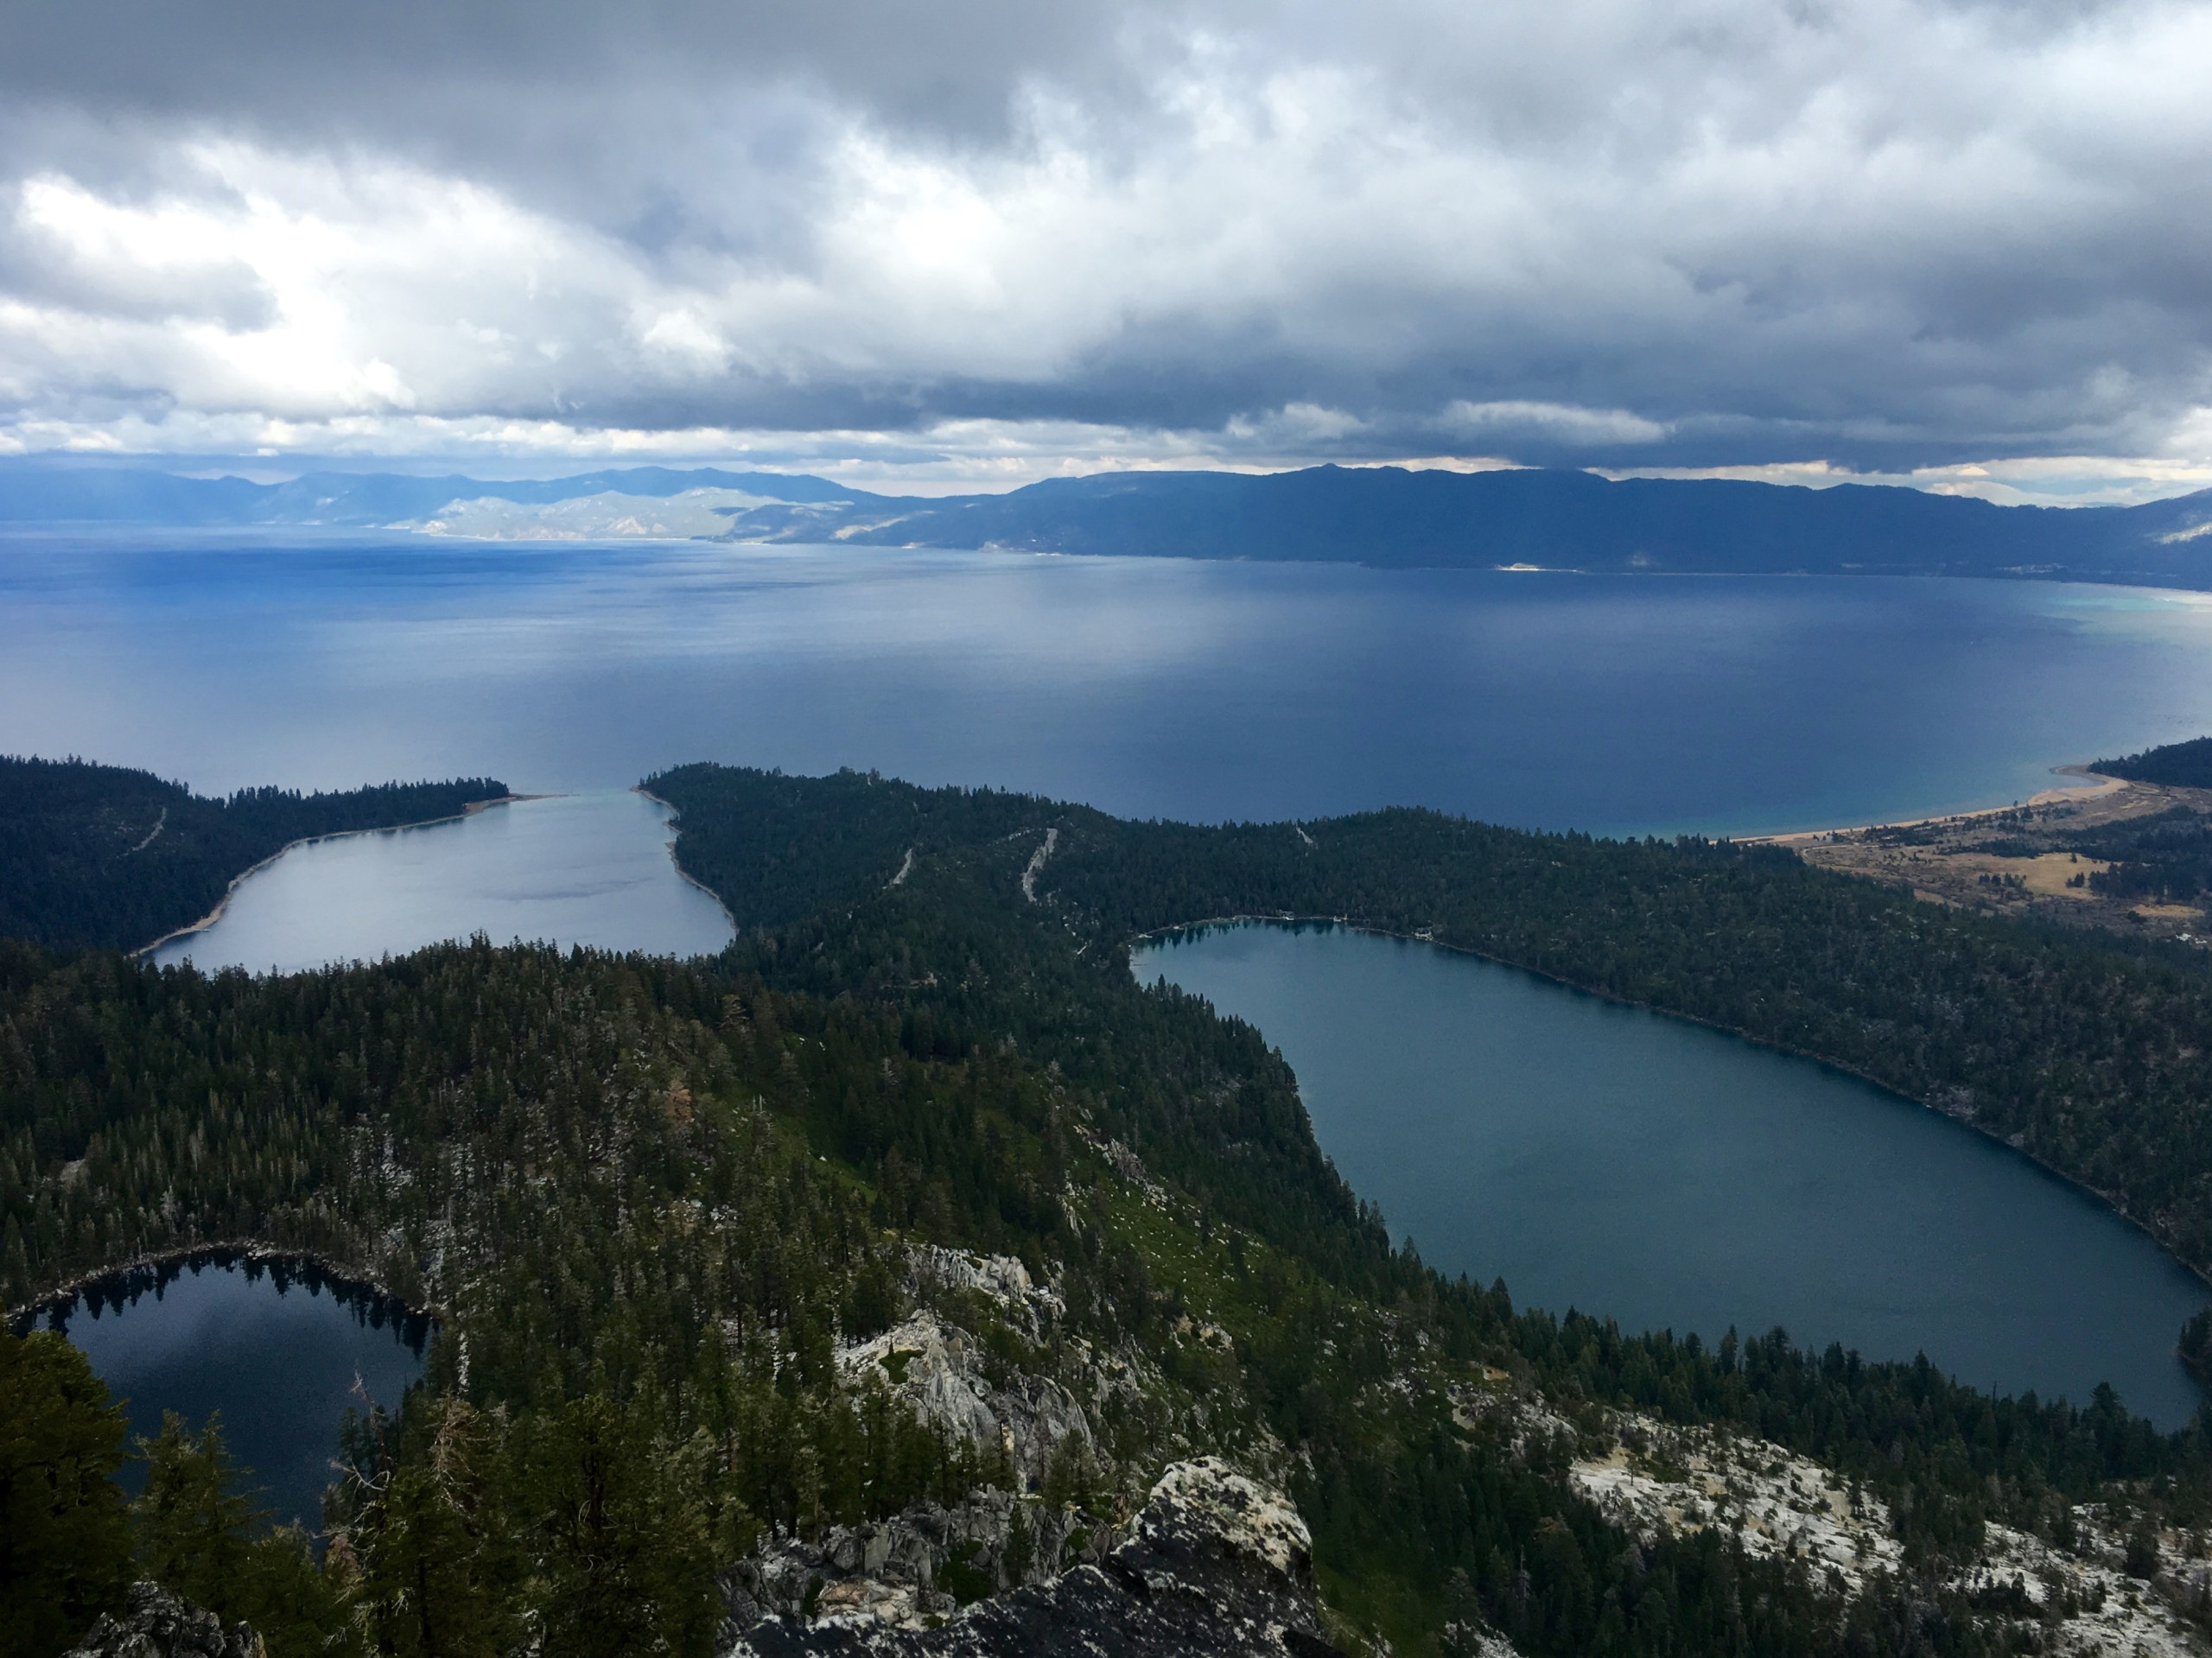 View from Maggie's South Peak. Looking down at Cascade Lake, Granite Lake, Emerald Bay, and the rest of Lake Tahoe.